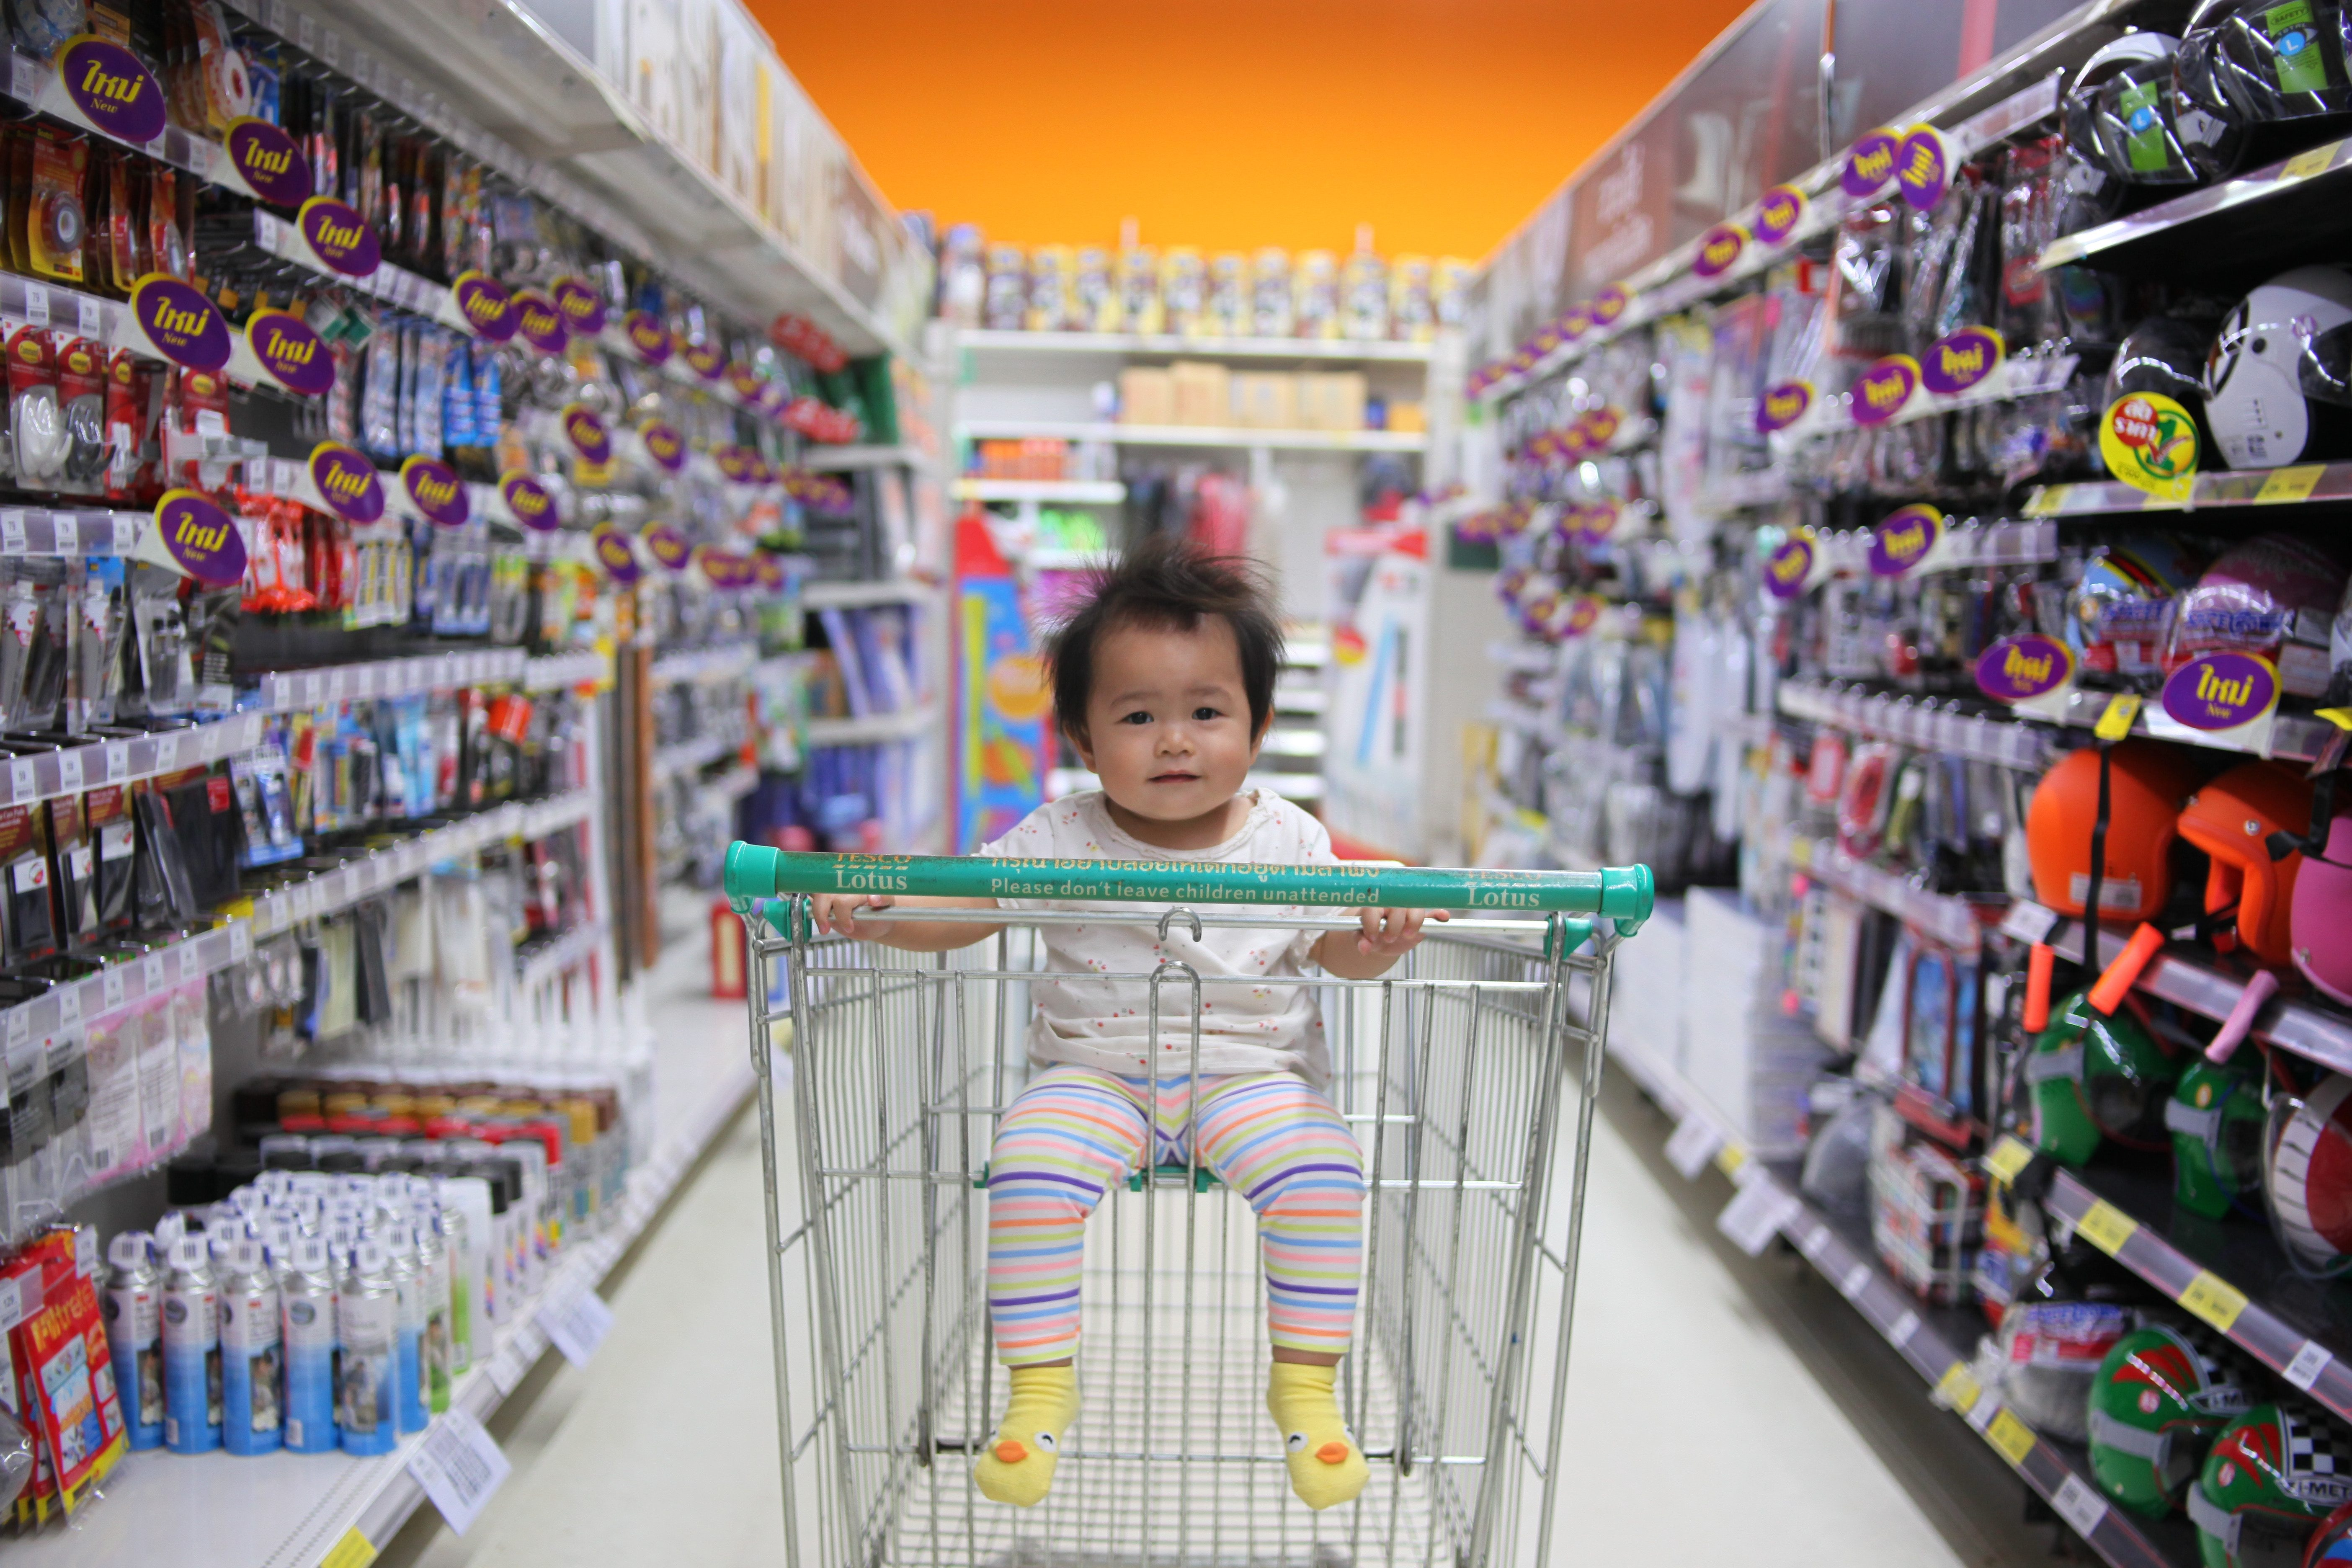 baby sat in a trolley seat in a store aisle